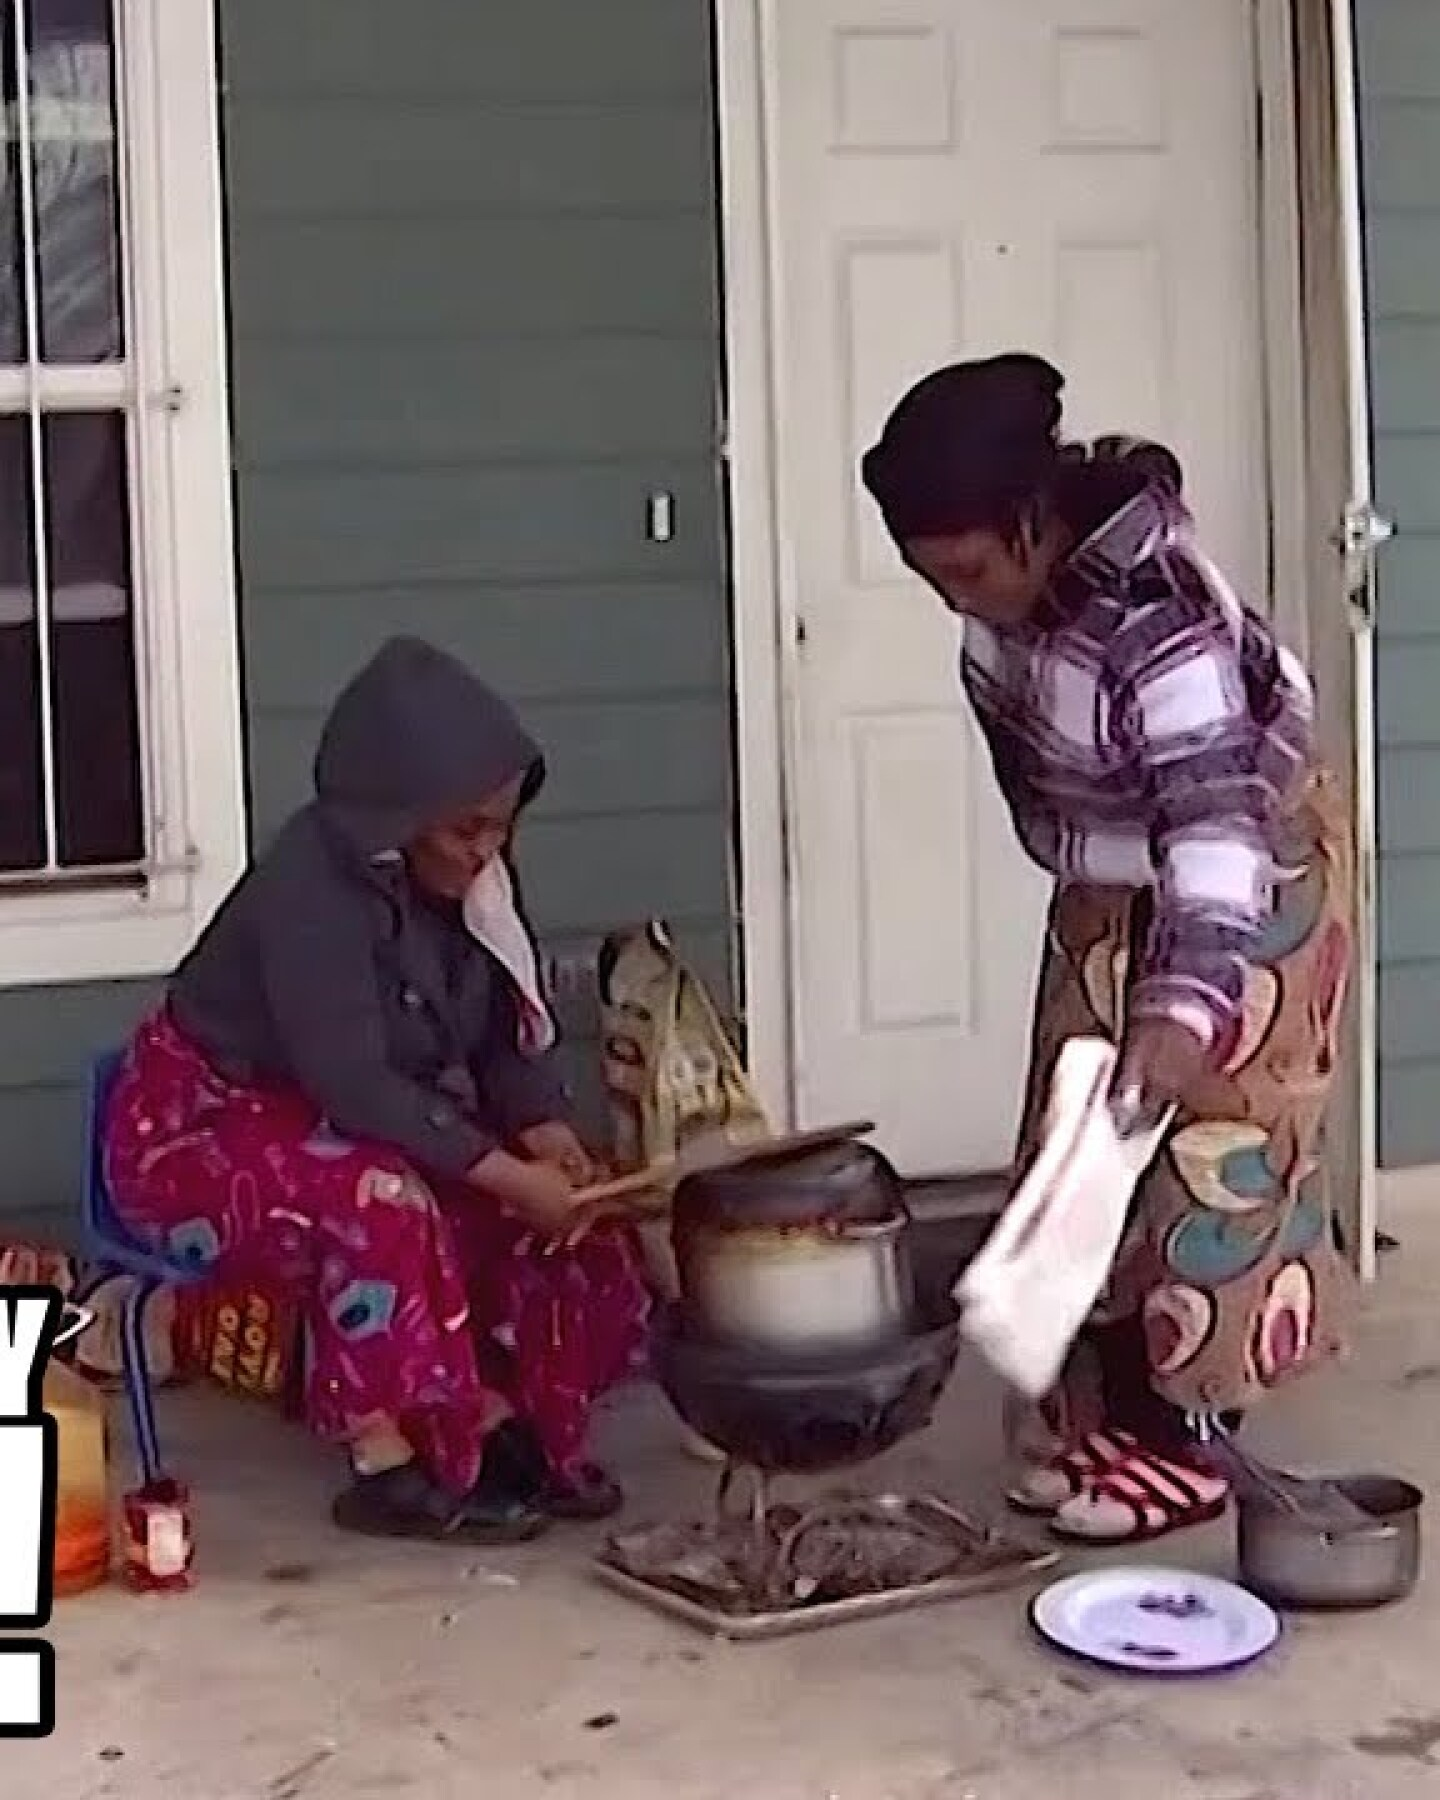 Two people tending to a pot on their porch in Texas.